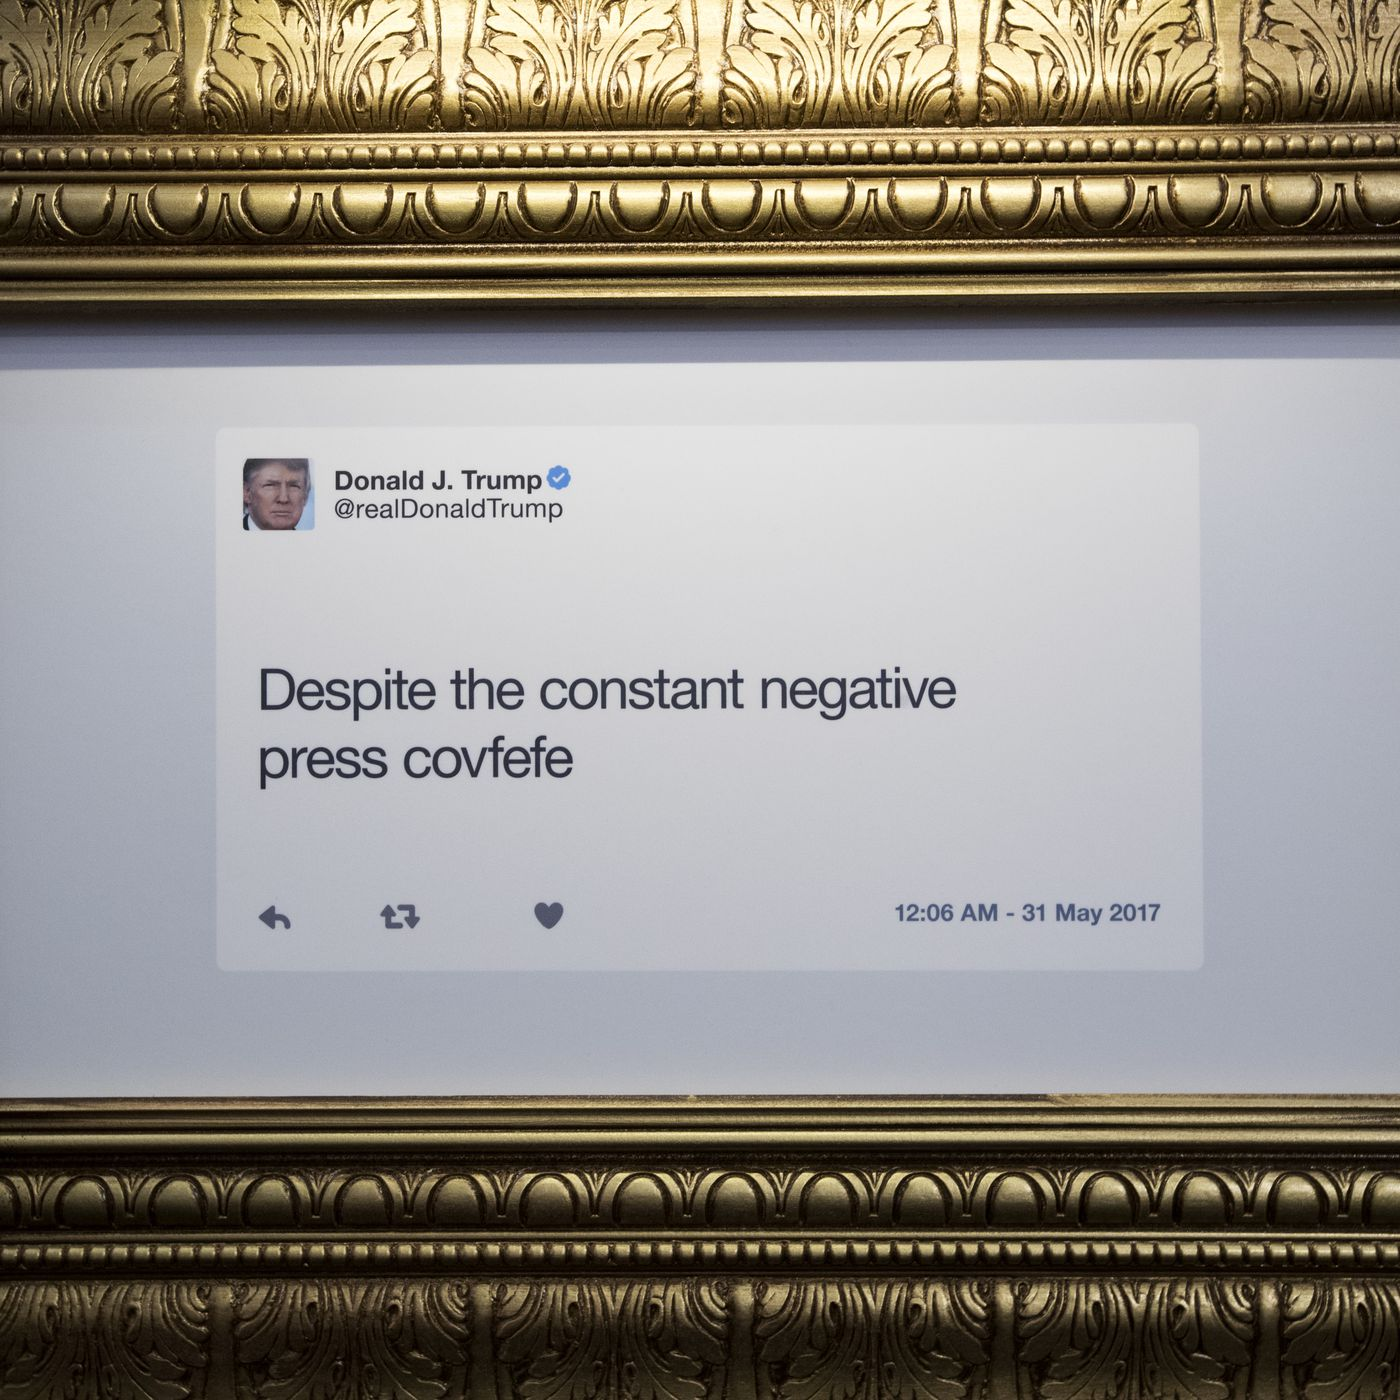 recode.net - Kurt Wagner and Kara Swisher - Donald Trump's Twitter account was temporarily deleted by a disgruntled company employee